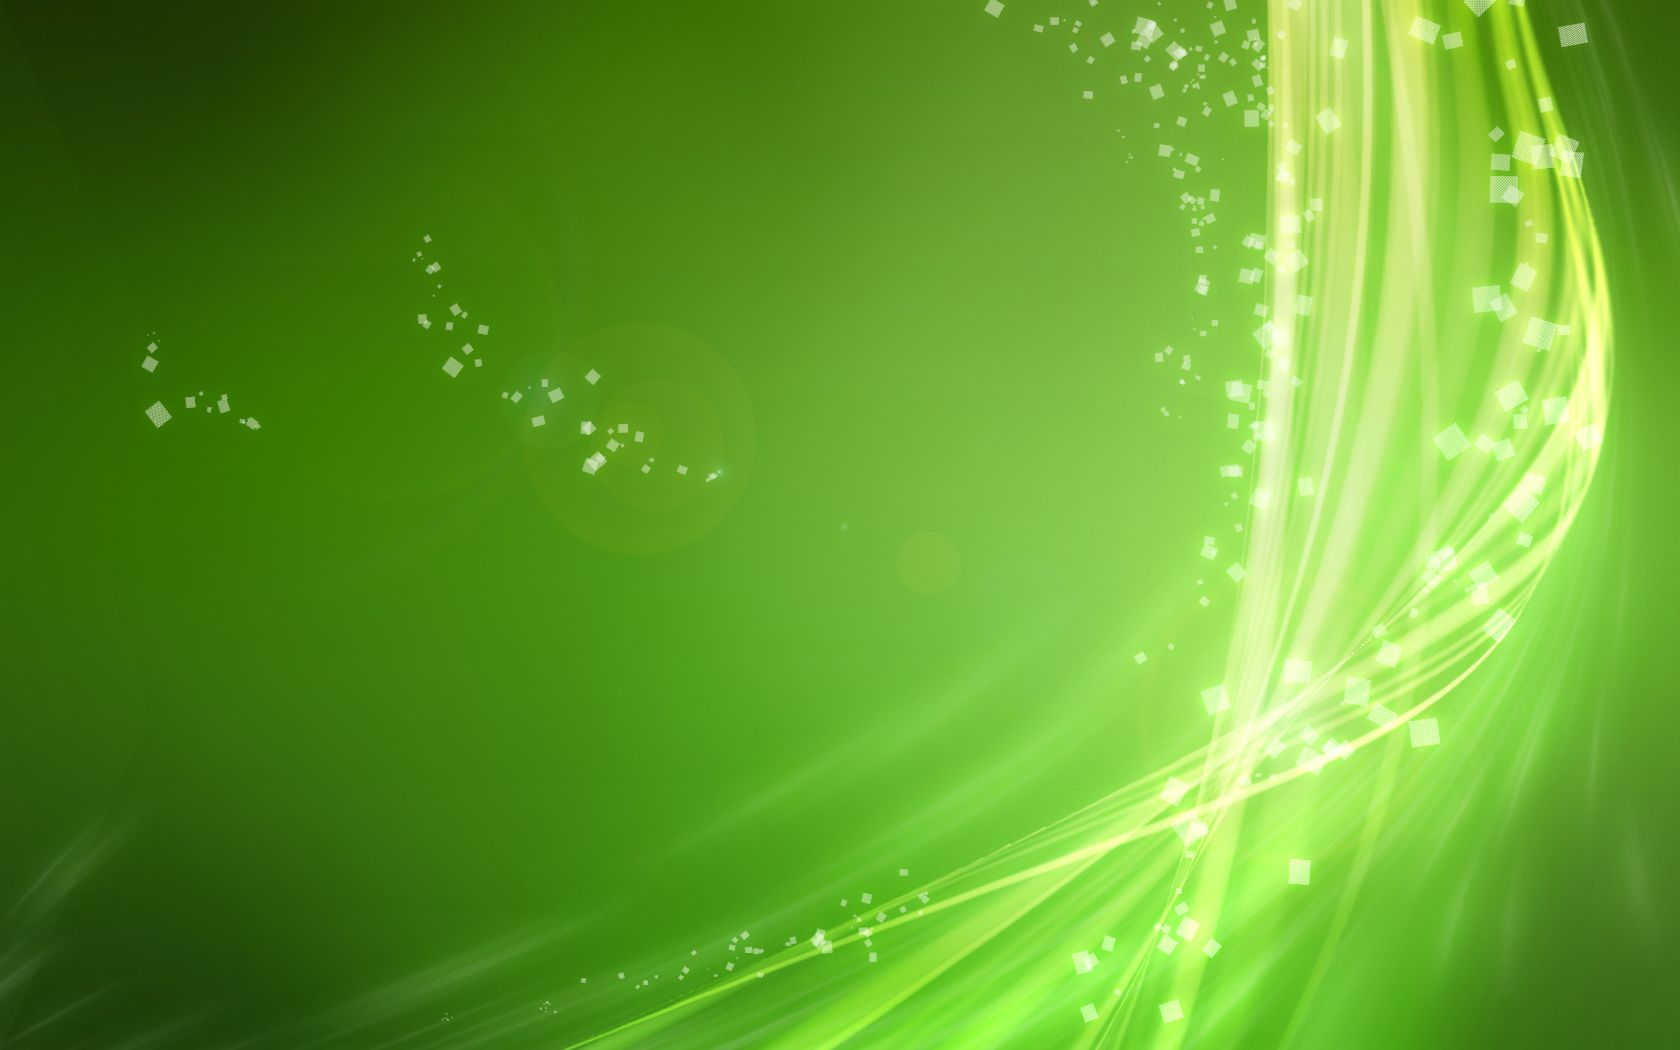 Green Abstract Wallpaper: Find Best Latest Green Abstract